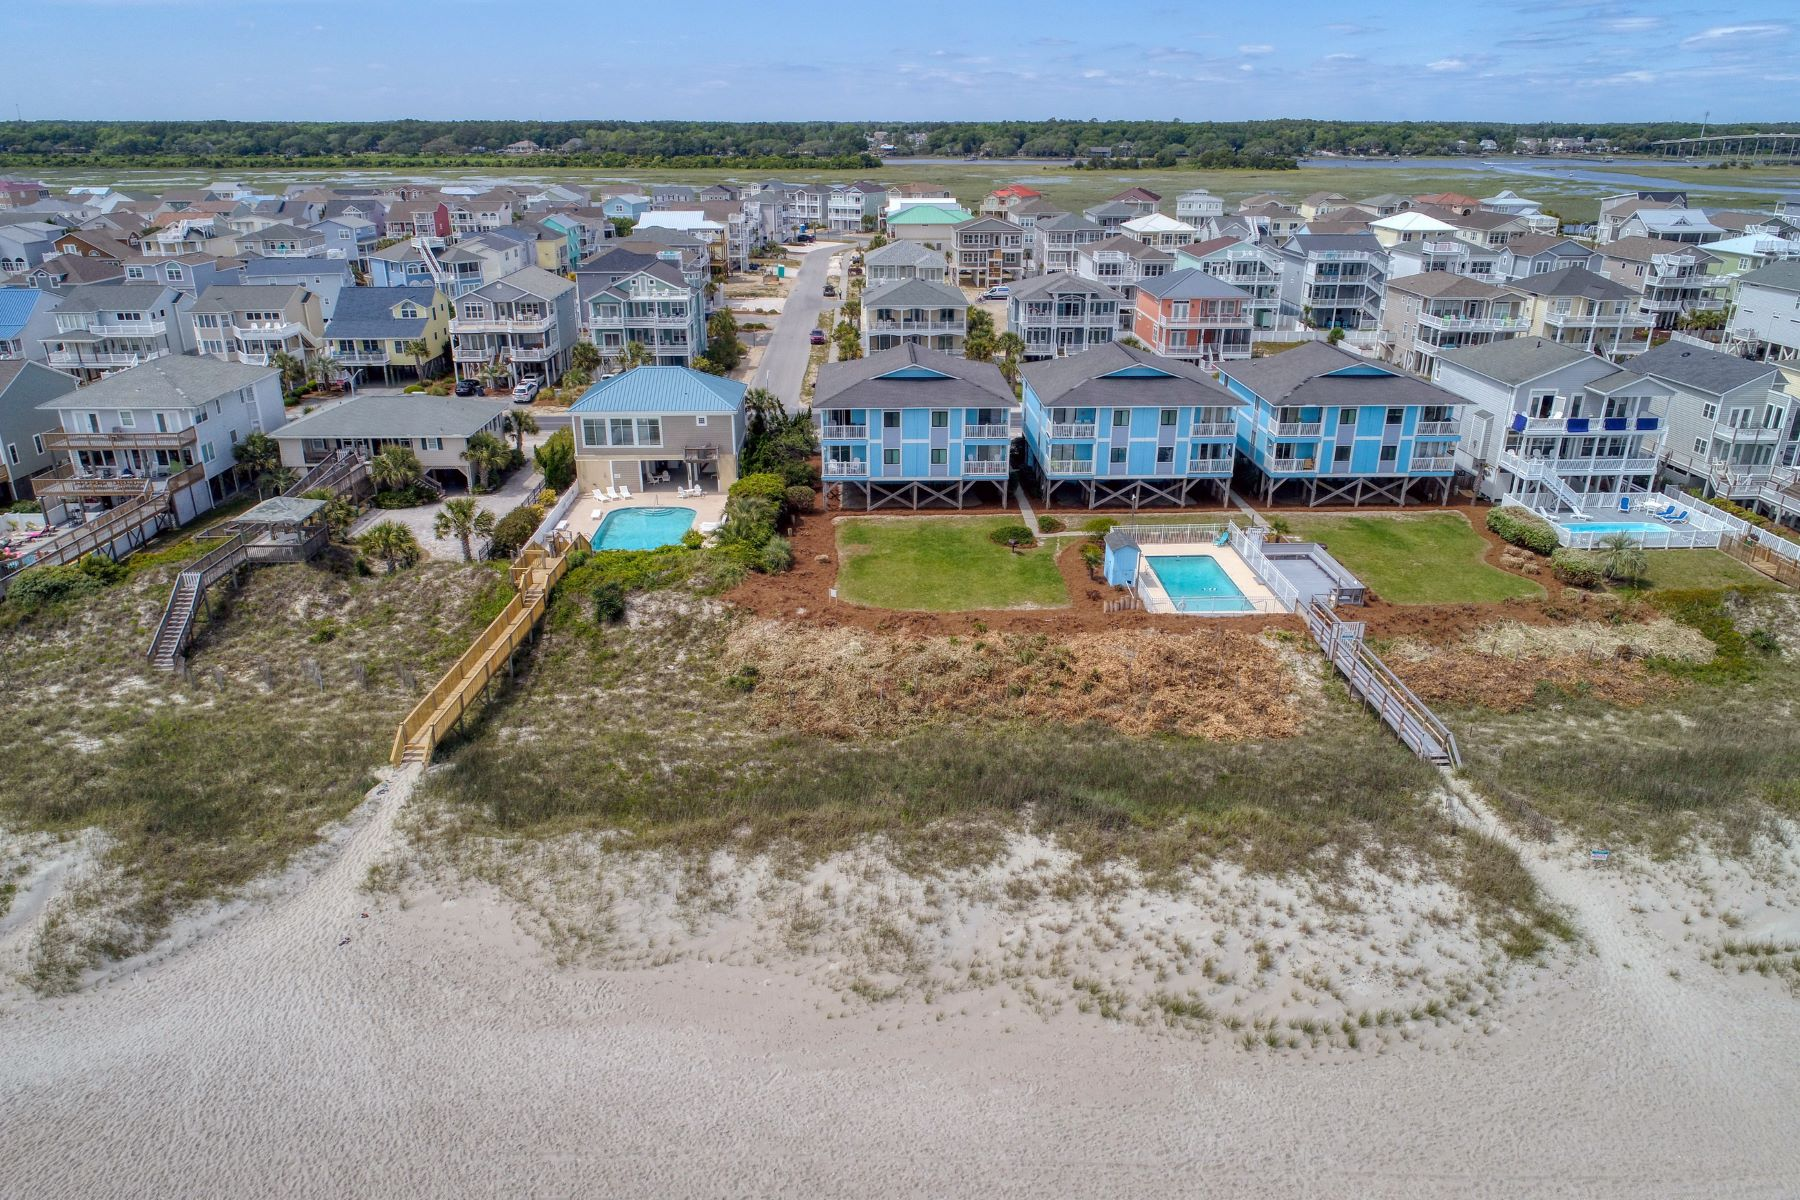 Land for Sale at Island Lot Ready to Build 99 W 2nd Street Ocean Isle Beach, North Carolina 28469 United States